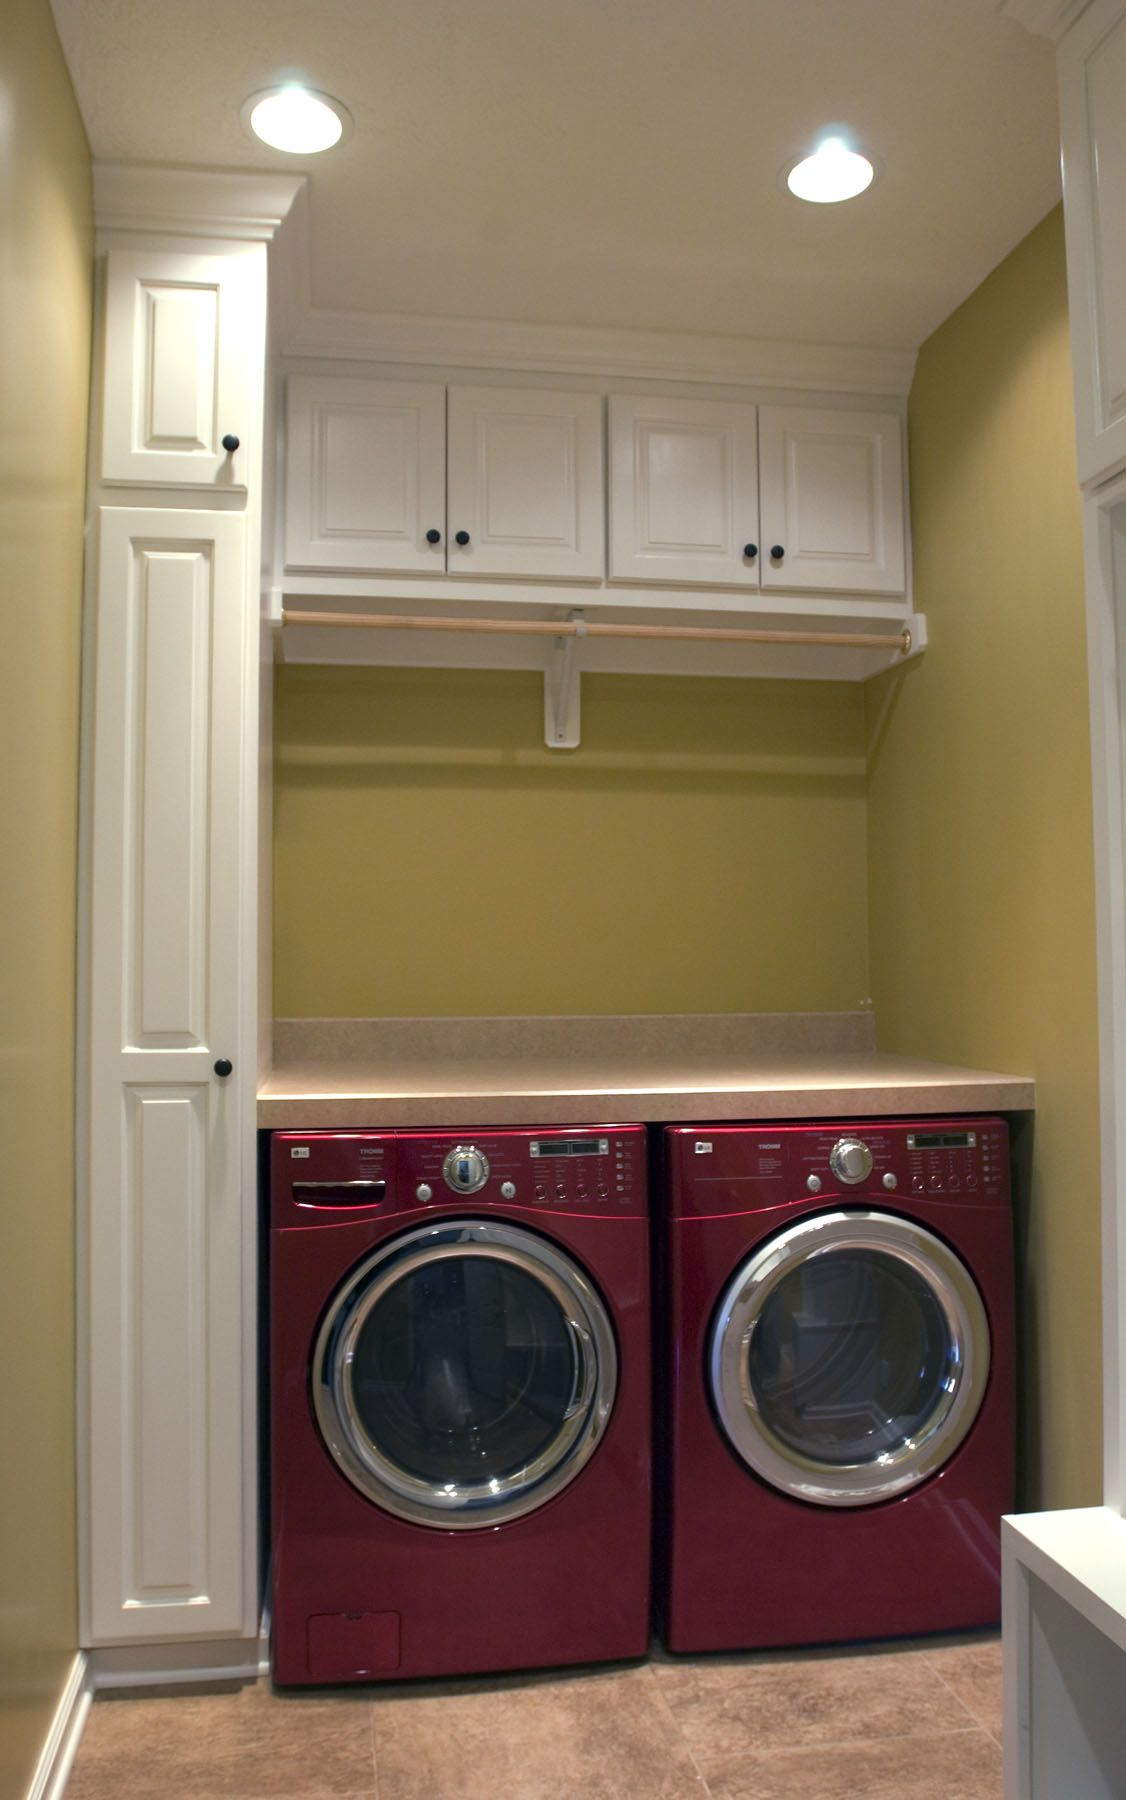 Narrow Cabinet For Detergent Etc Laundry Room Layouts Laundry